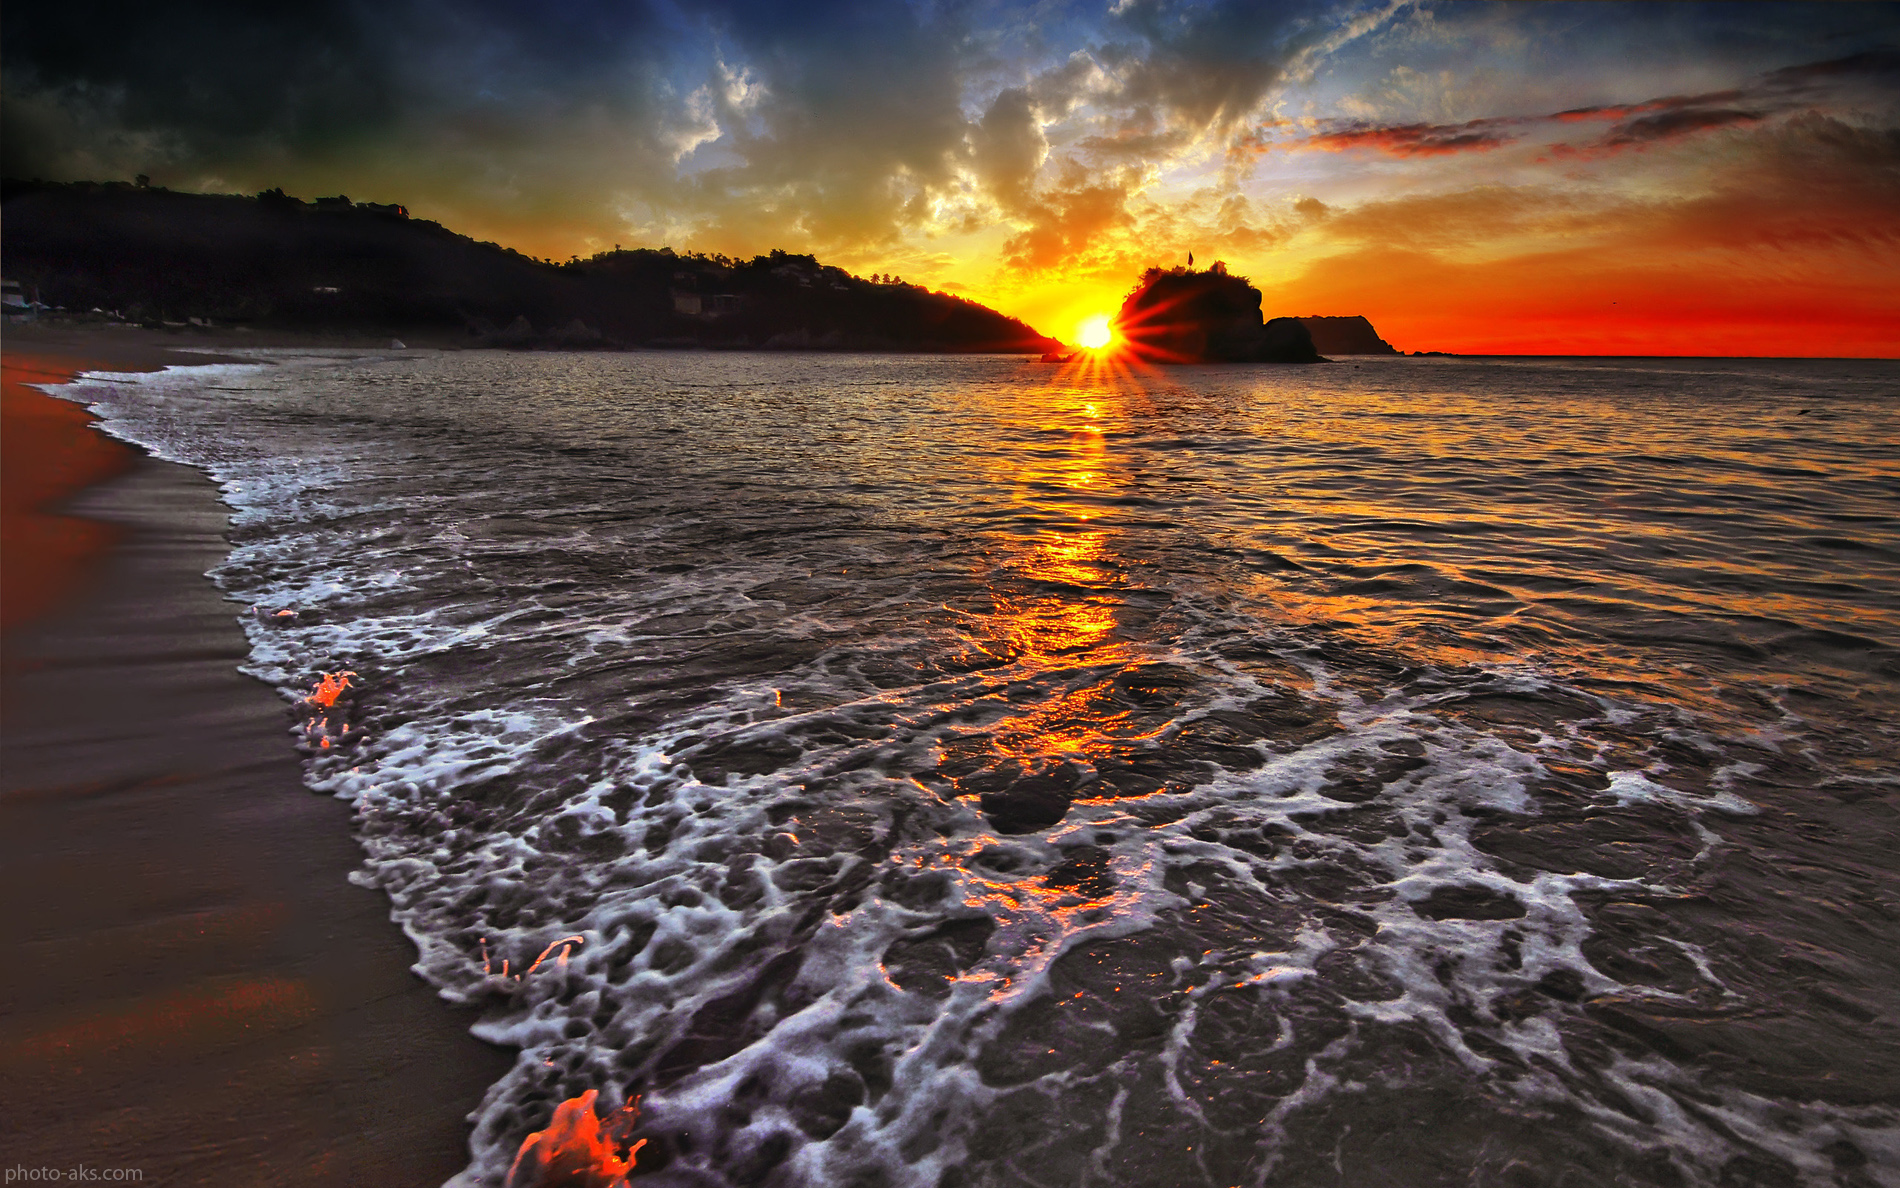 http://pic.photo-aks.com/photo/nature/sea-beach/large/sunset-on-the-beach.jpg